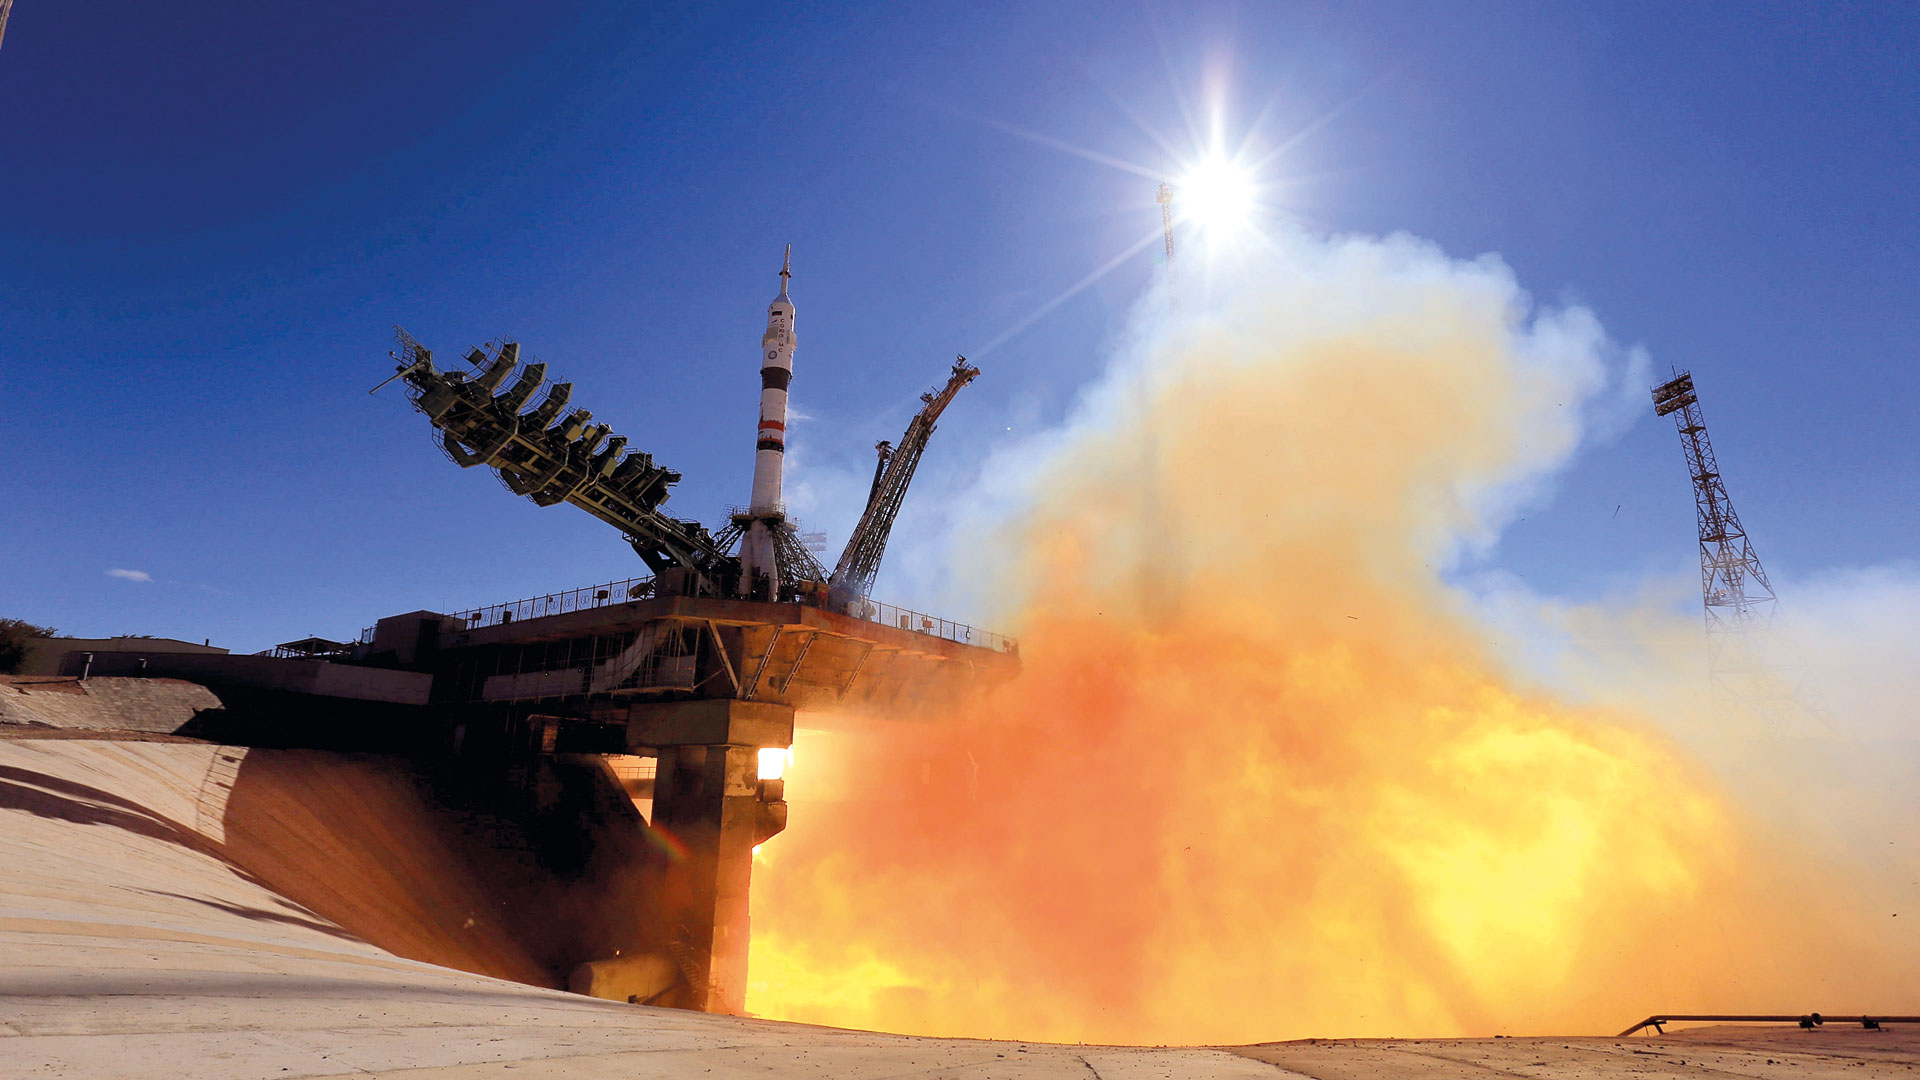 A Russian crew is shooting the first feature film on the ISS